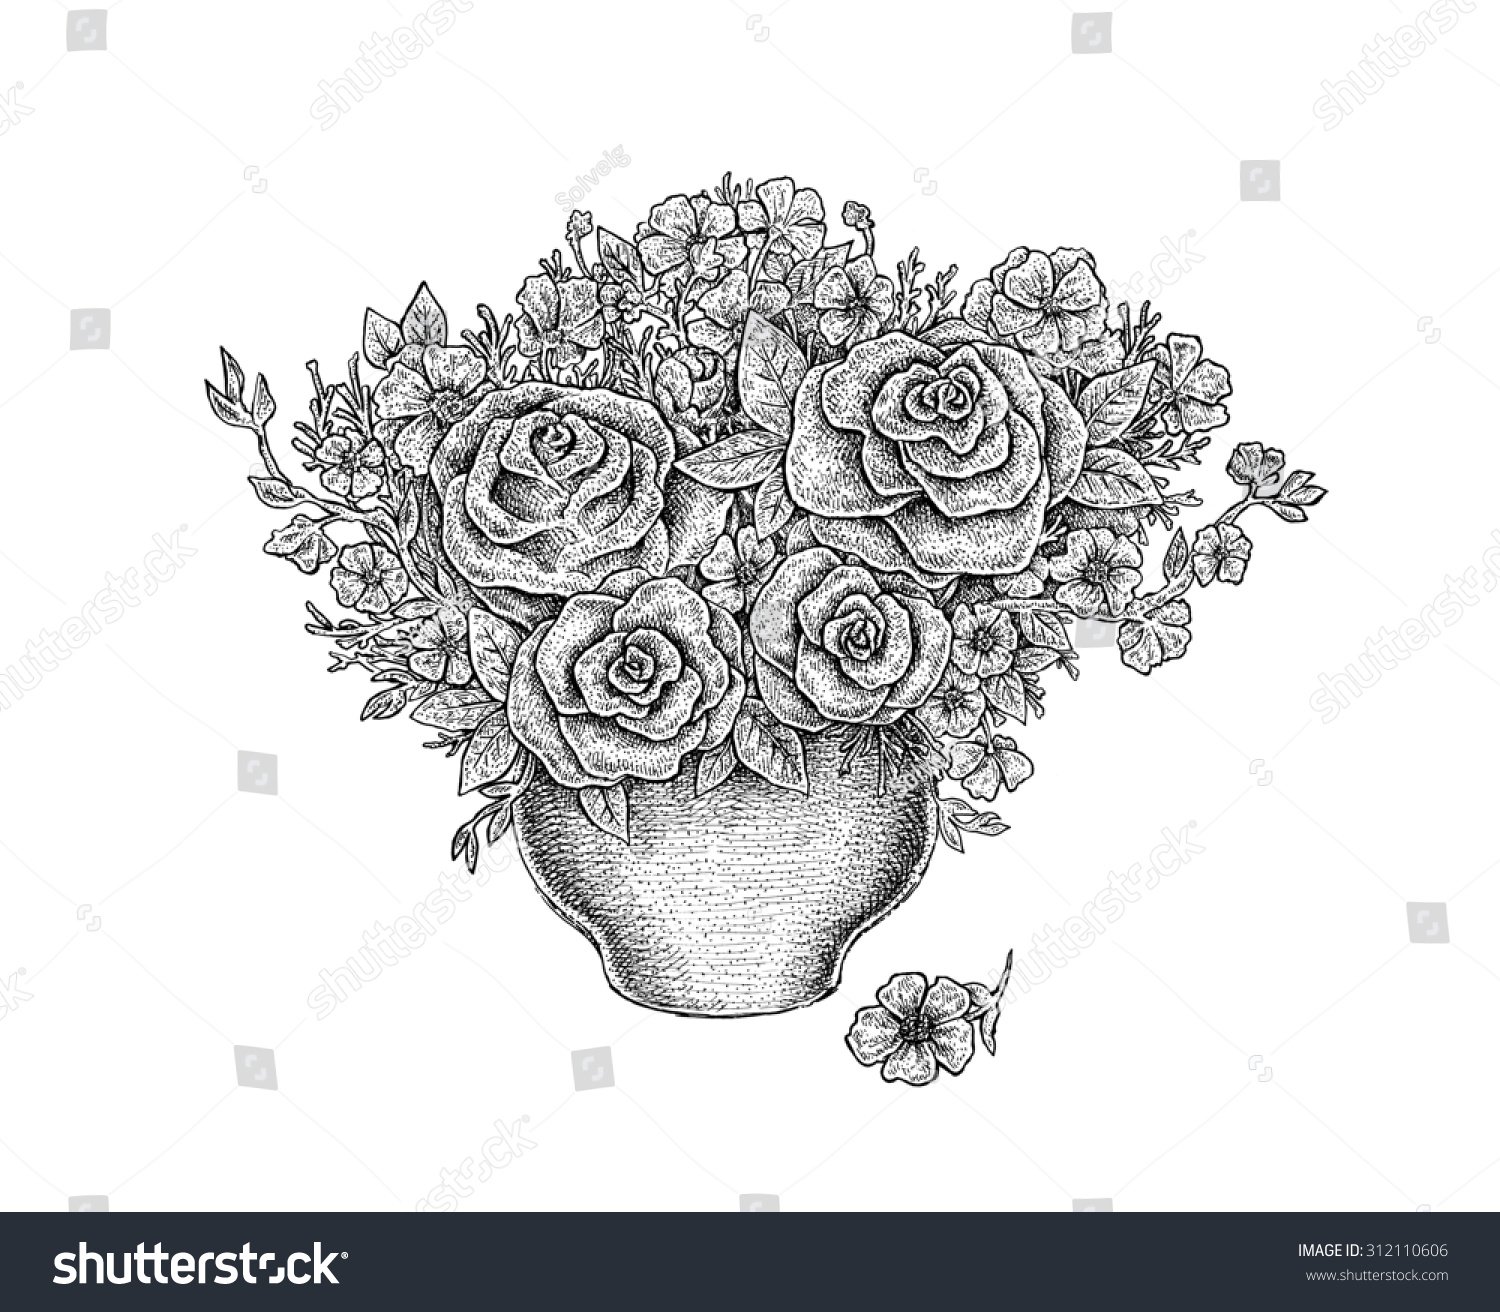 Black white ink drawing flower bouquet stock illustration 312110606 black and white ink drawing of a flower bouquet in a vase raster artwork izmirmasajfo